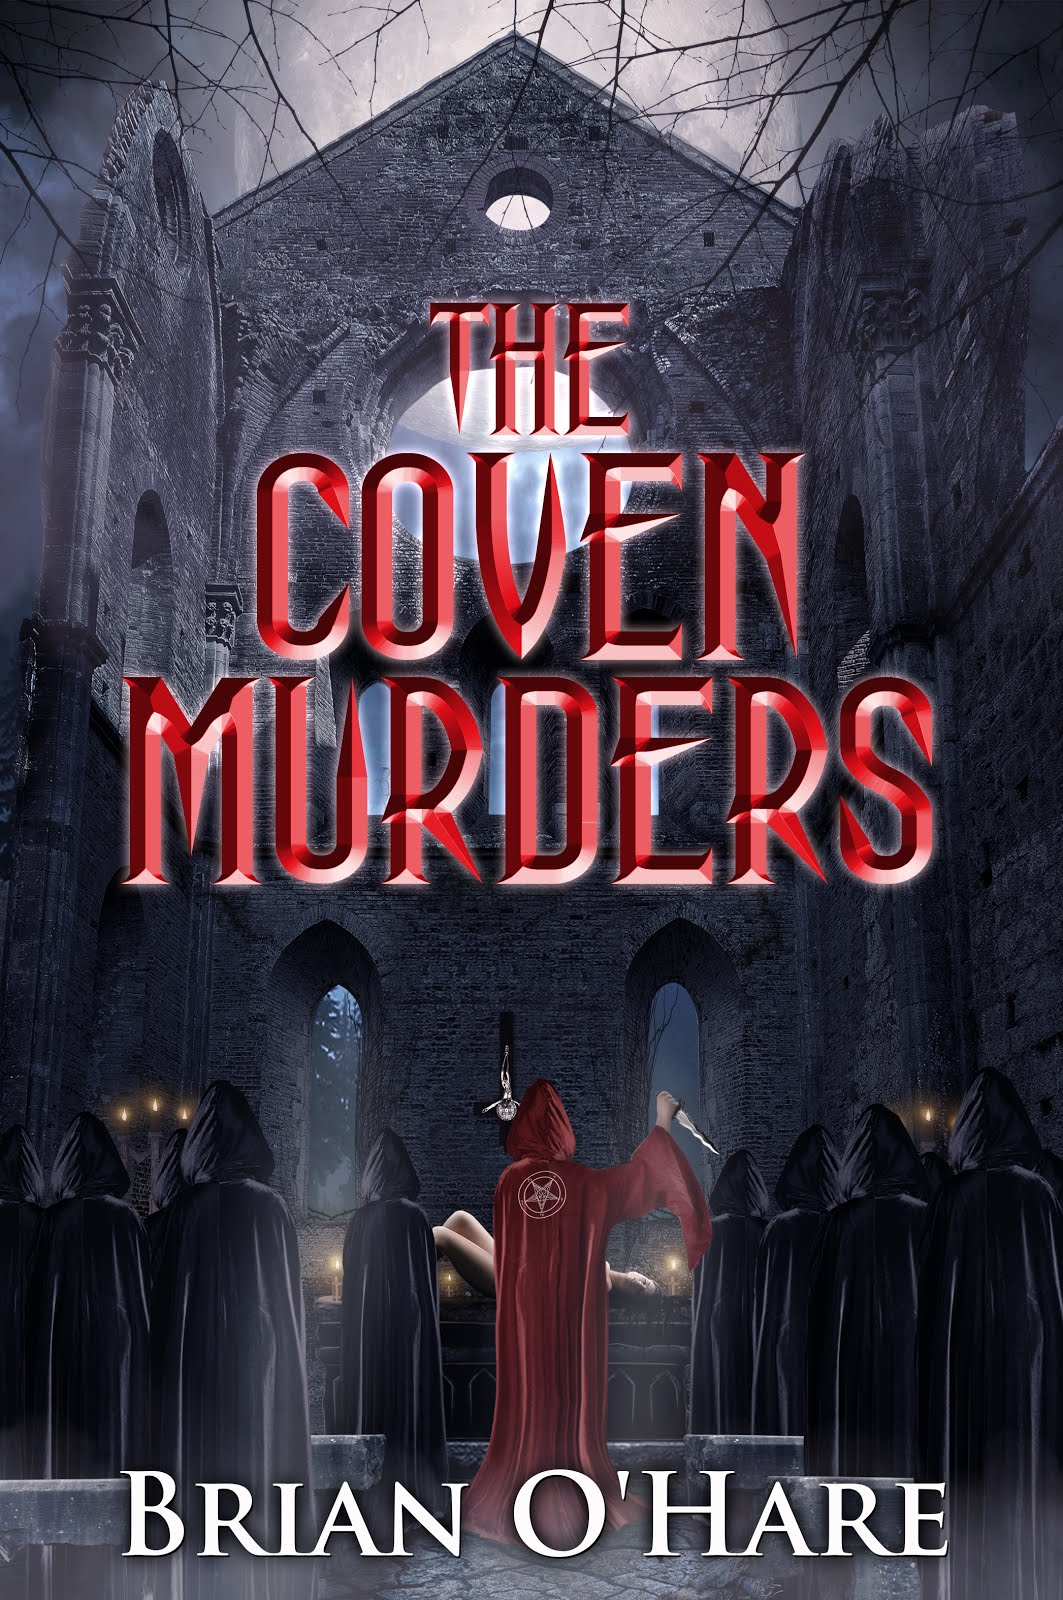 The Coven Murders